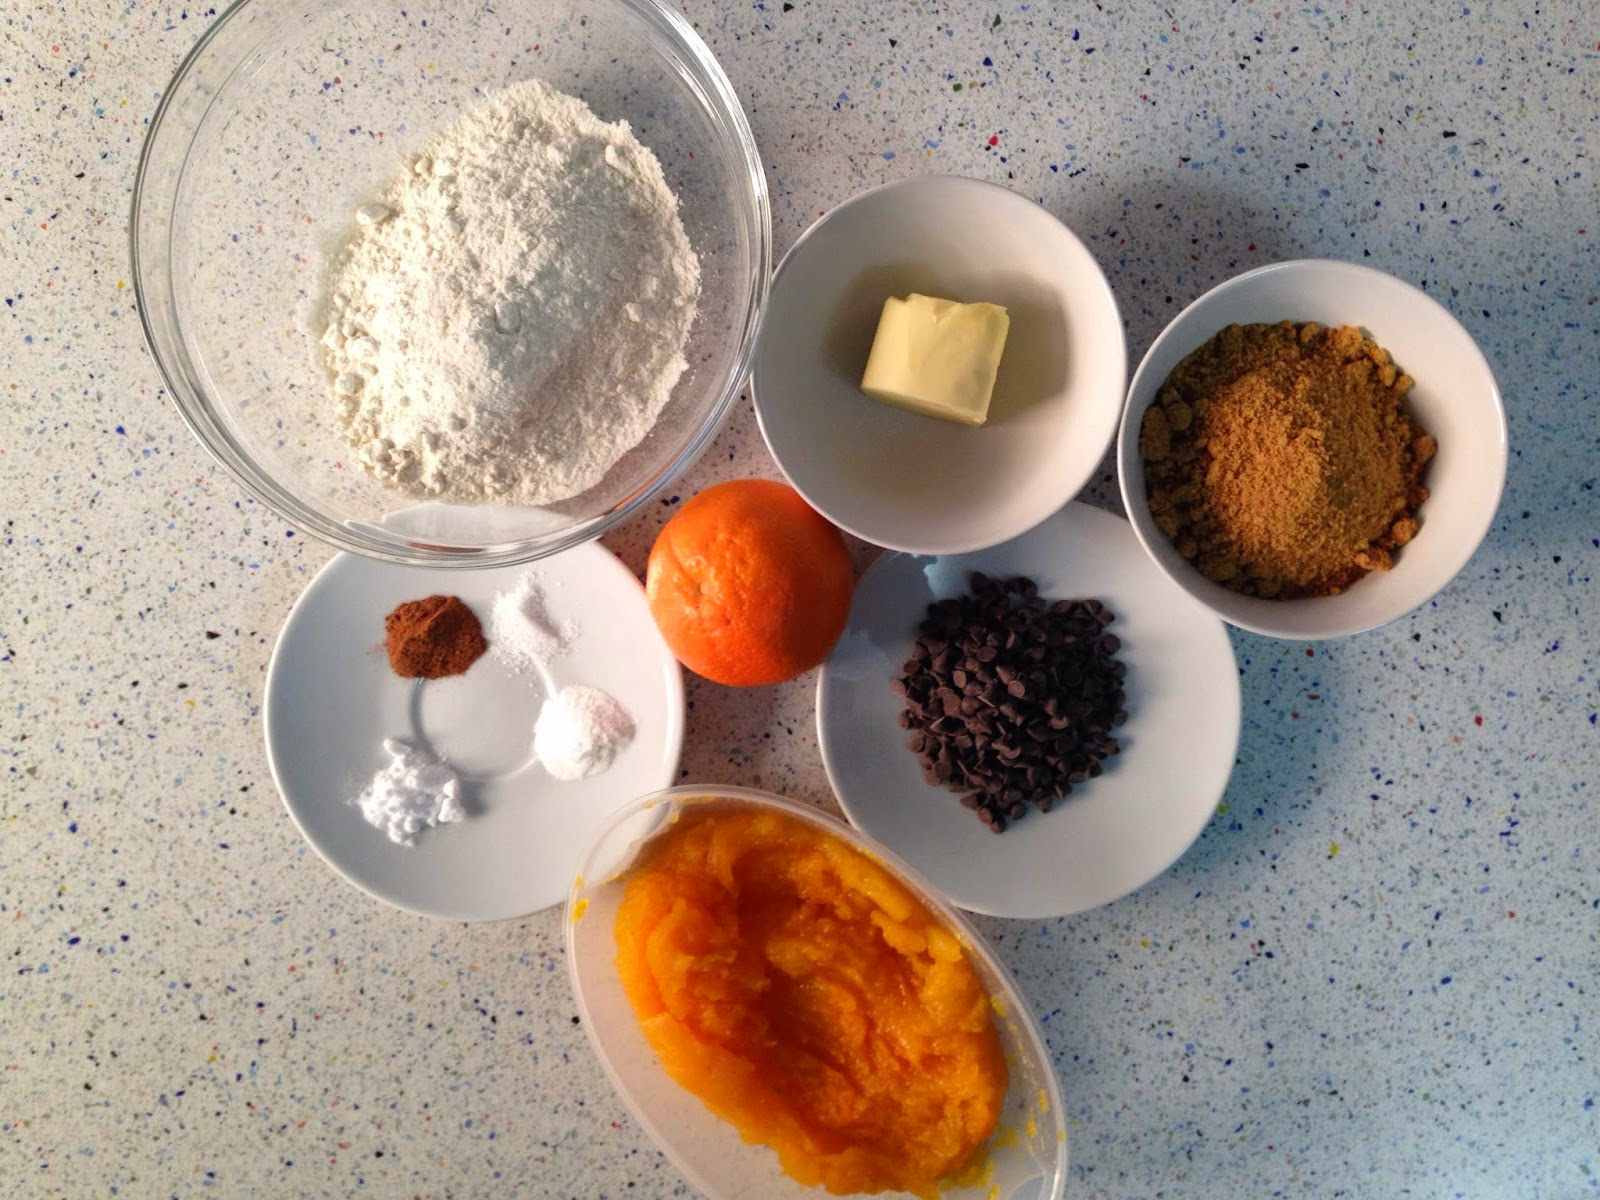 Ingredientes galletas de calabaza